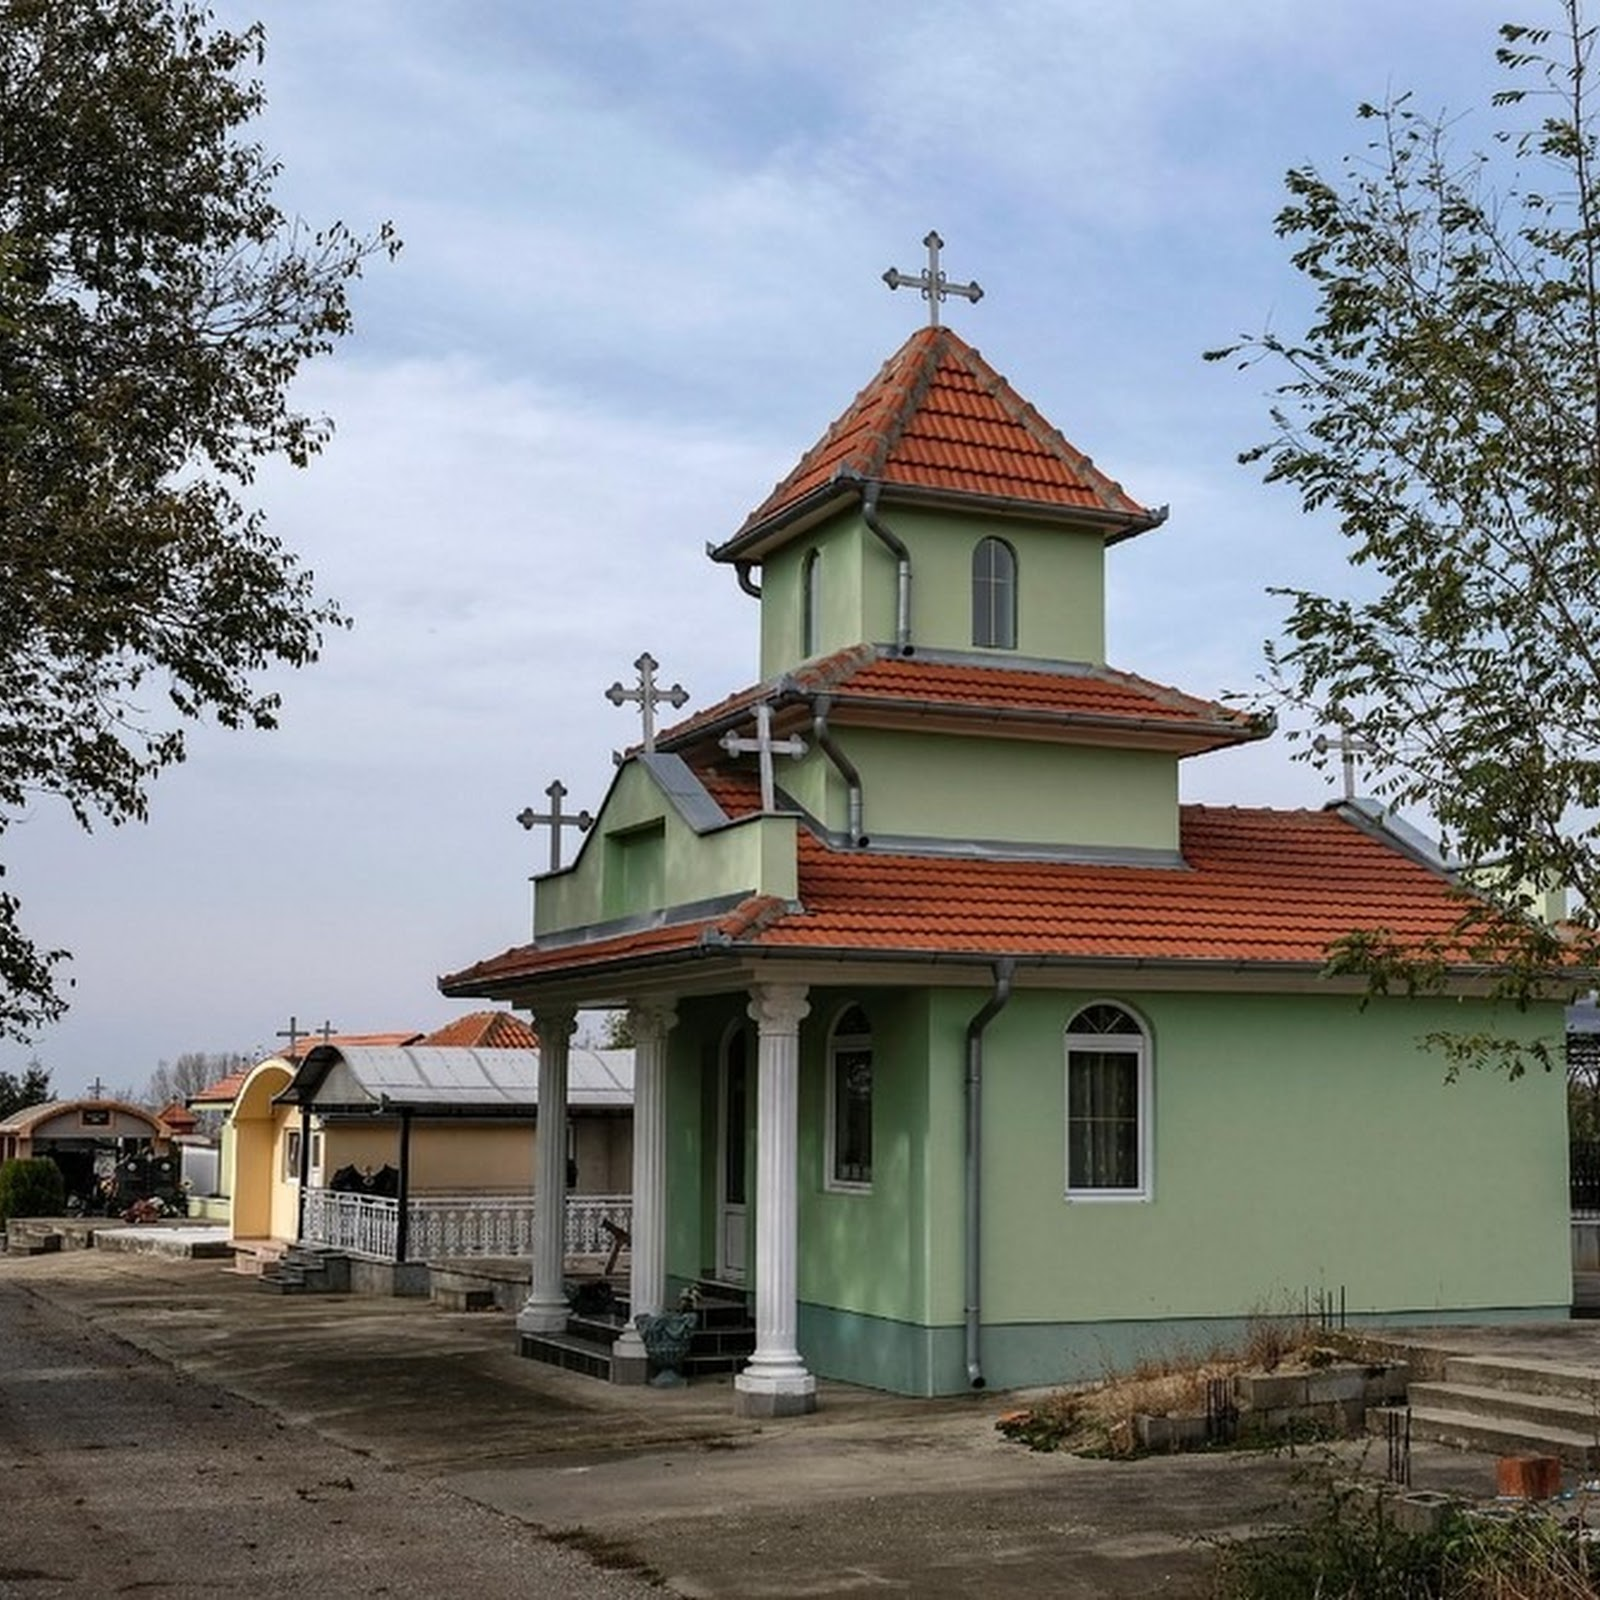 The Bungalows of Eastern Serbia's Cemeteries